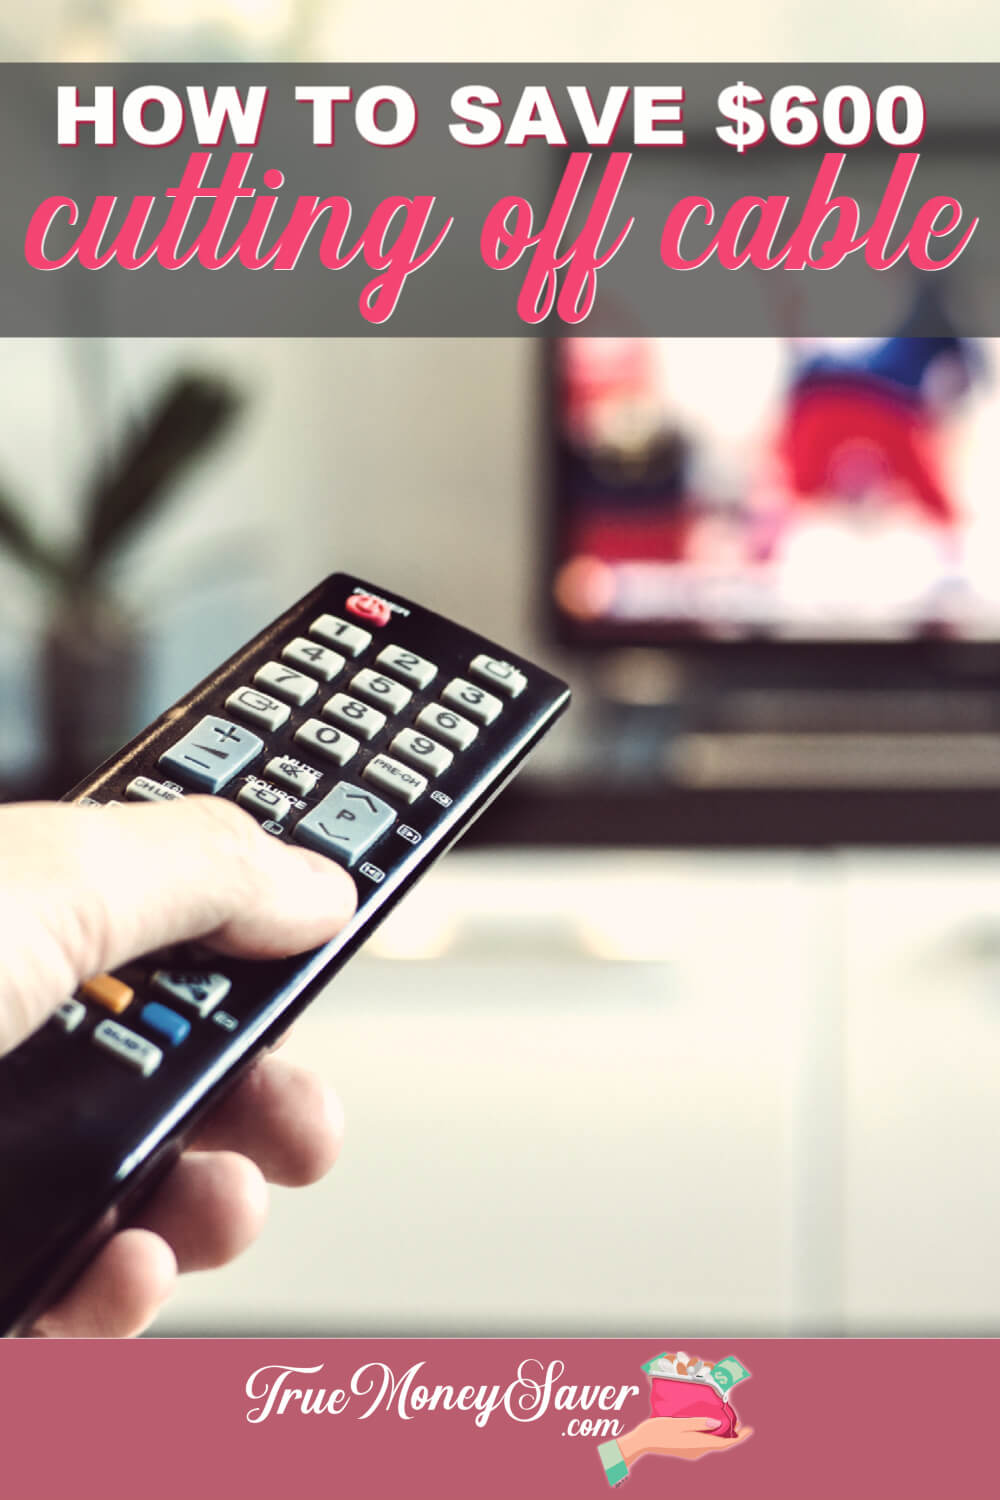 Is it time to cut out that hefty cable bill? You can cut it and still have too much to watch with these super saving tips! #truecouponing #savings #cable #debtfree #freedom